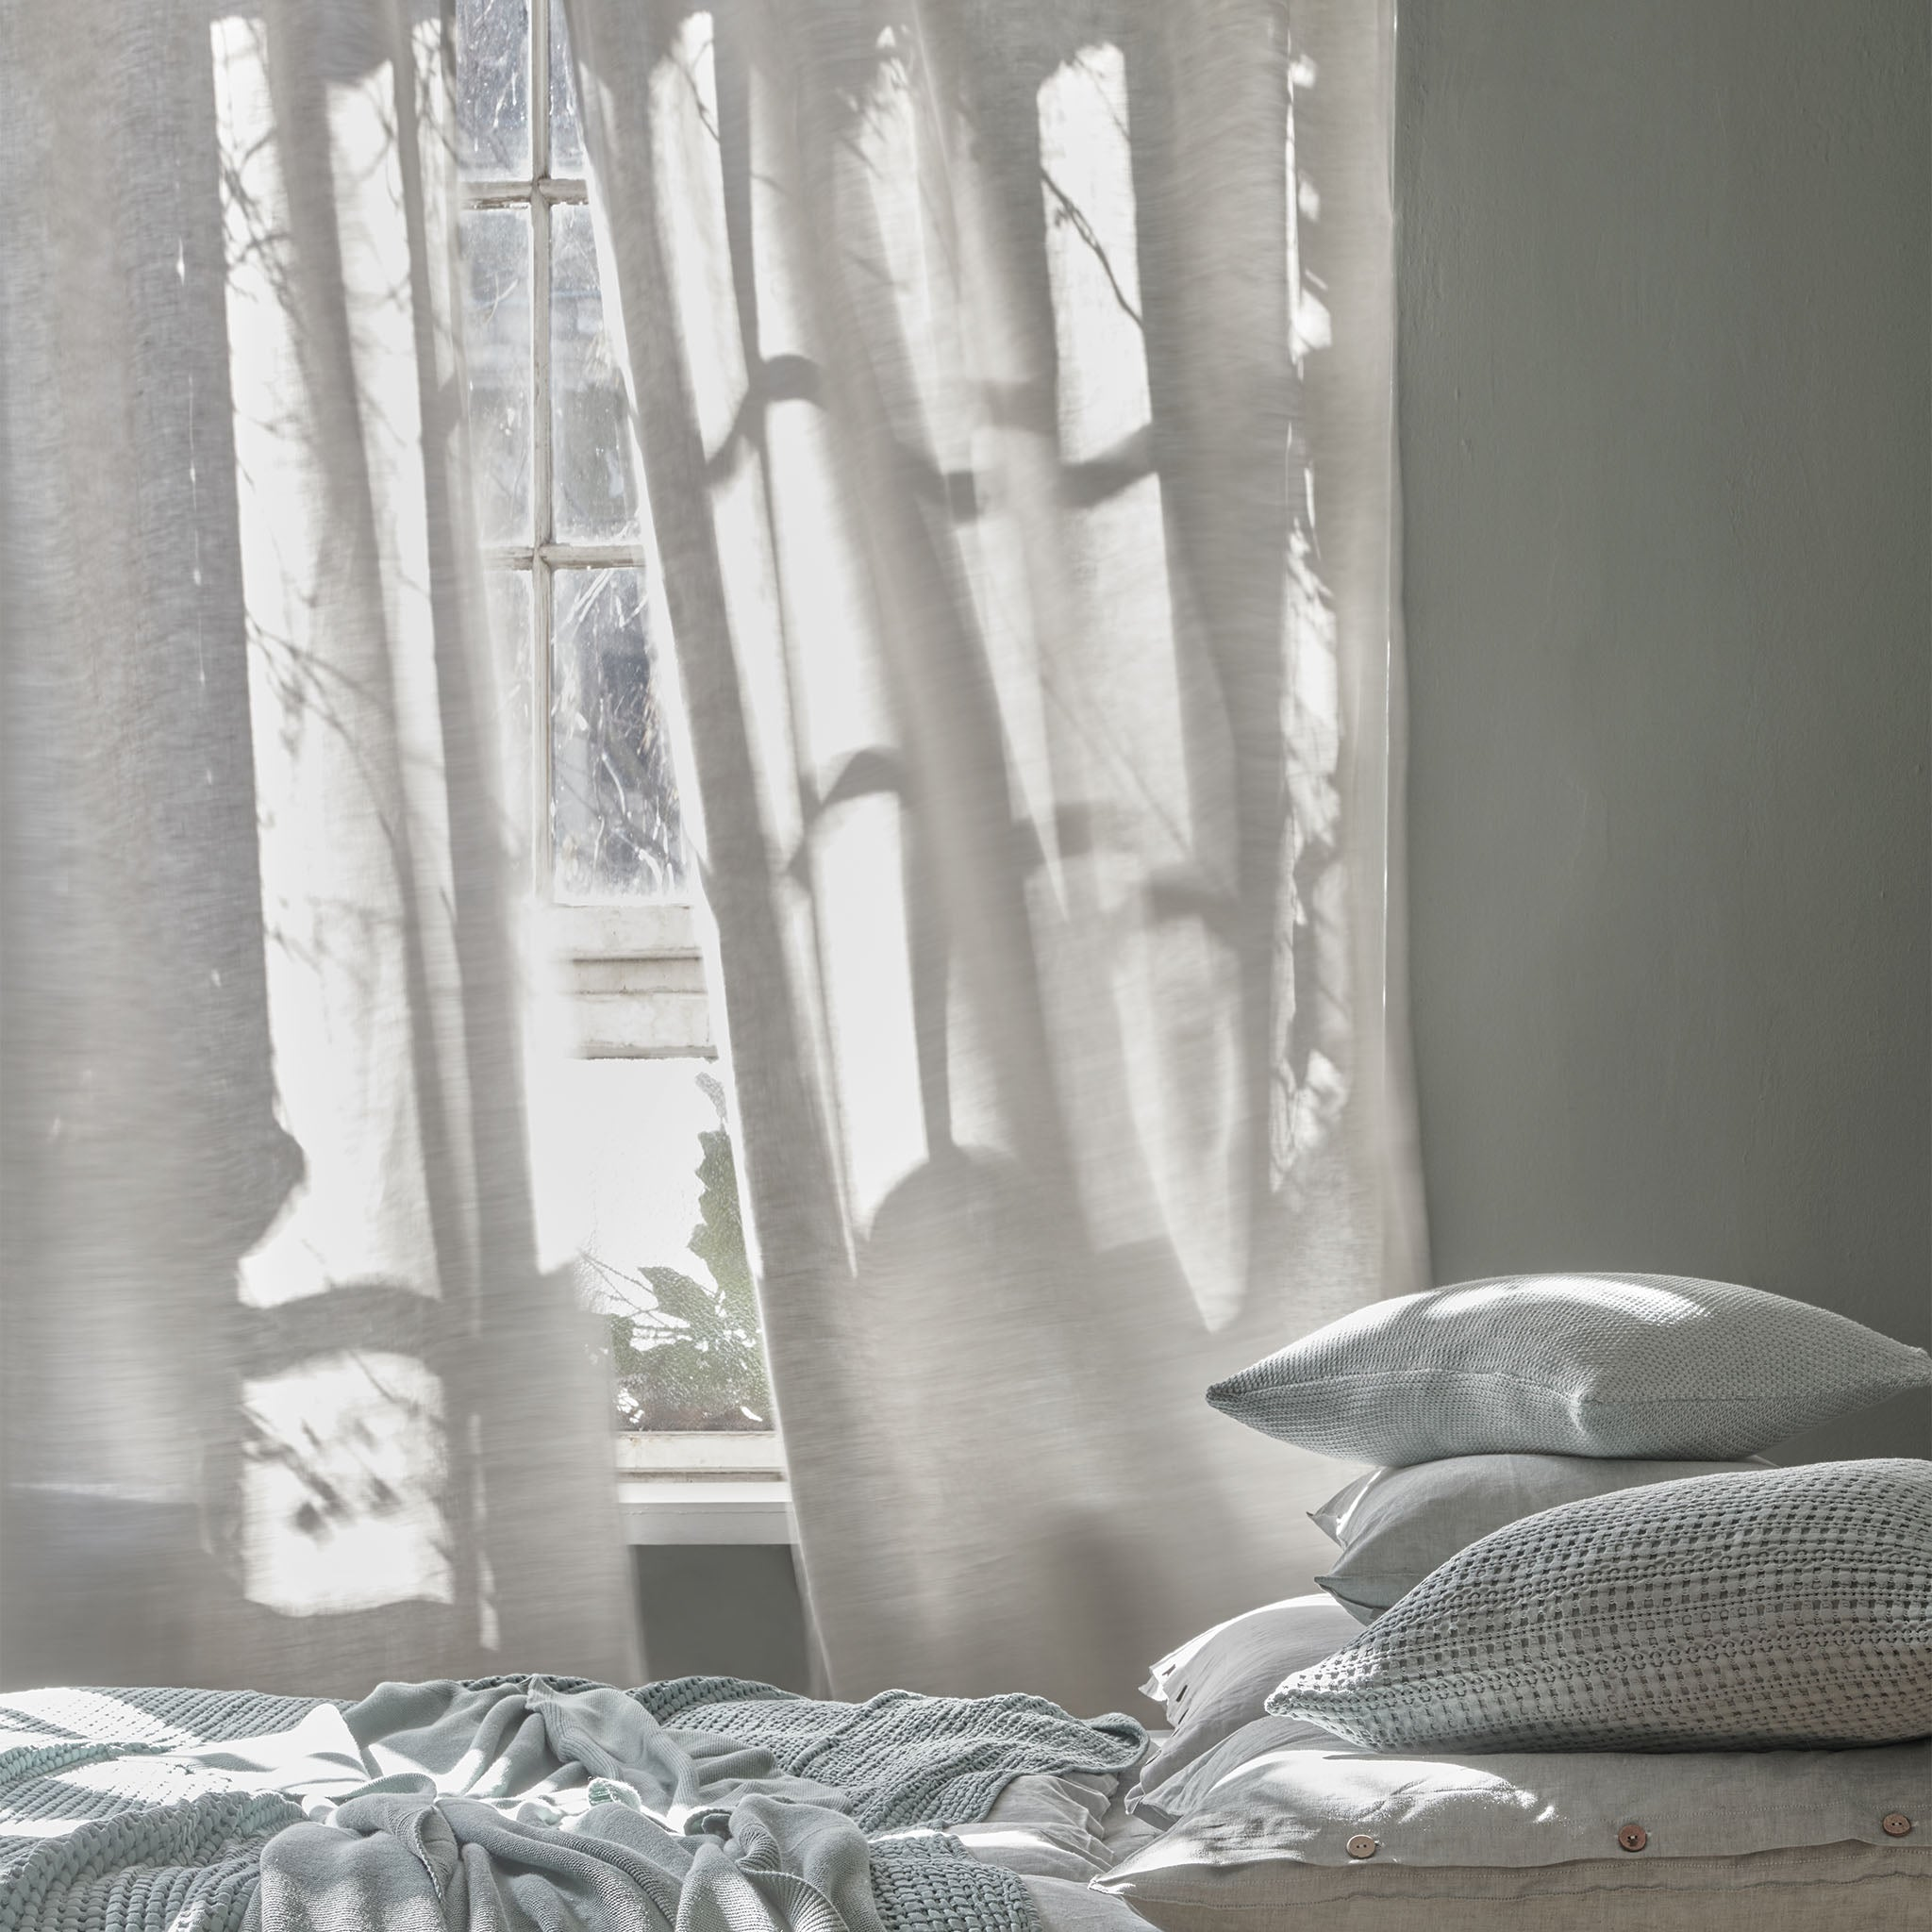 Zelva Curtain in natural | Home & Living inspiration | URBANARA